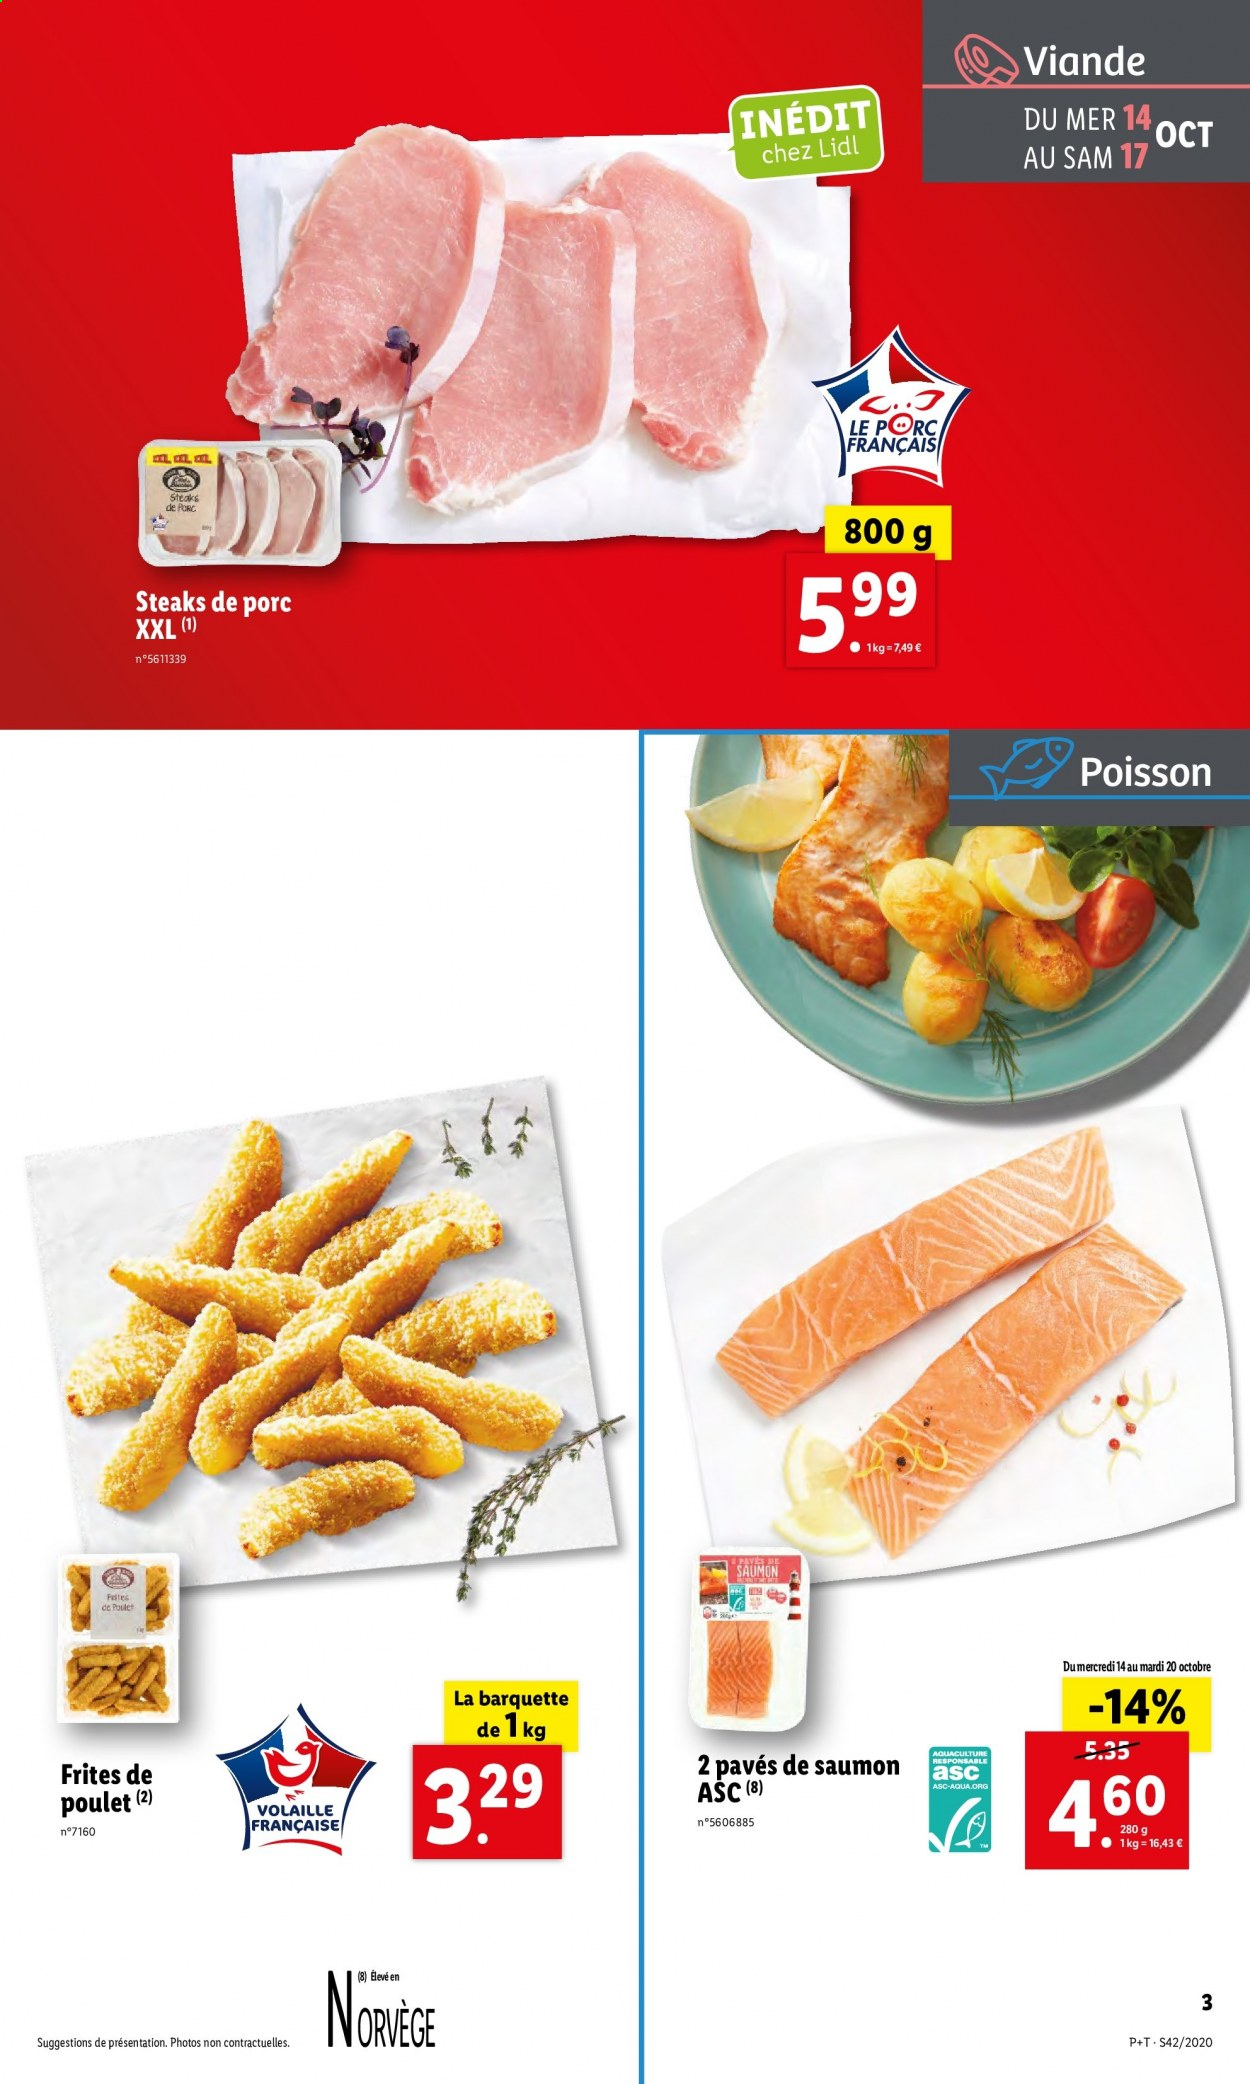 Catalogue Lidl - 14.10.2020 - 20.10.2020. Page 3.